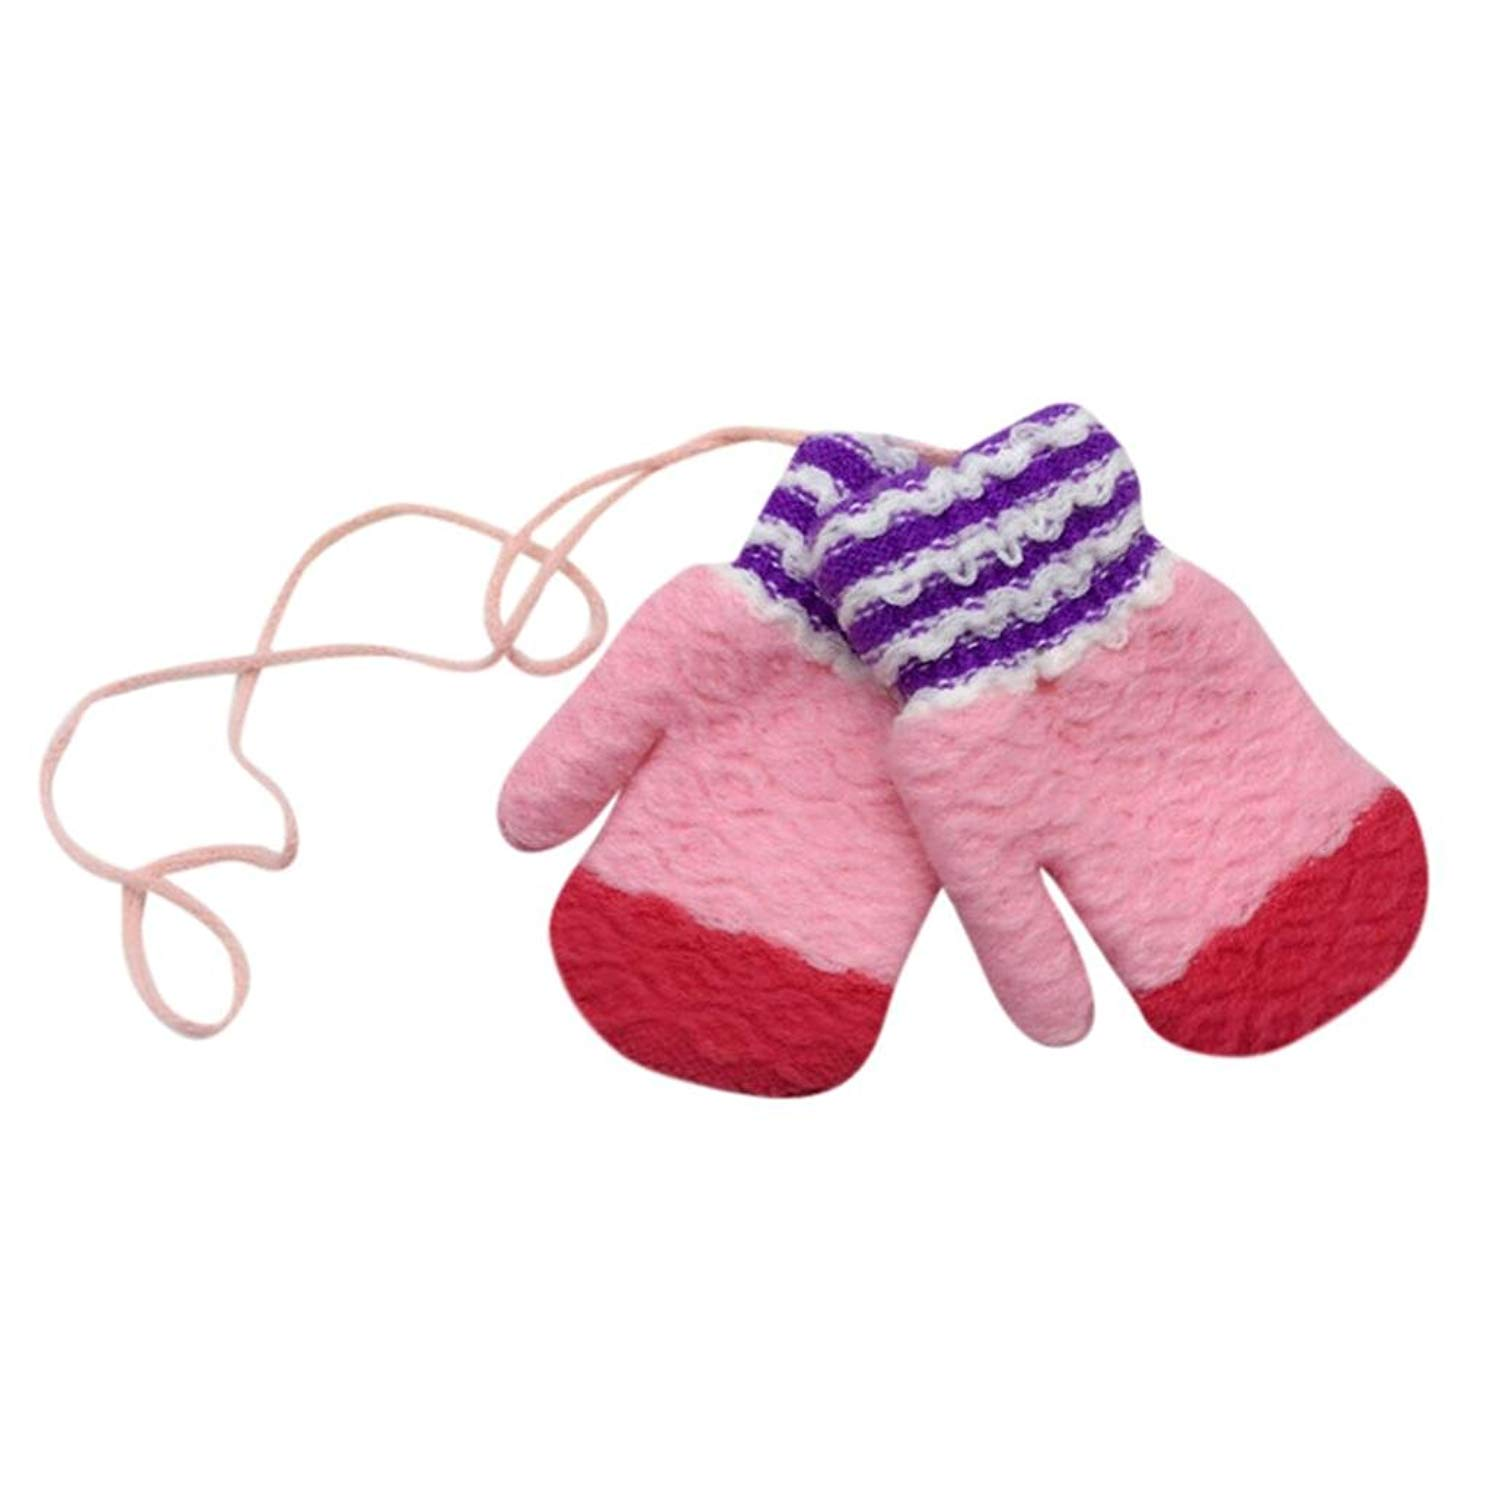 Hot Sale!!! Toddler Baby Gloves,Jushye Toddler Baby Cute Thicken Striped Hot Girls Boys Of Winter Warm Gloves Mittens With String